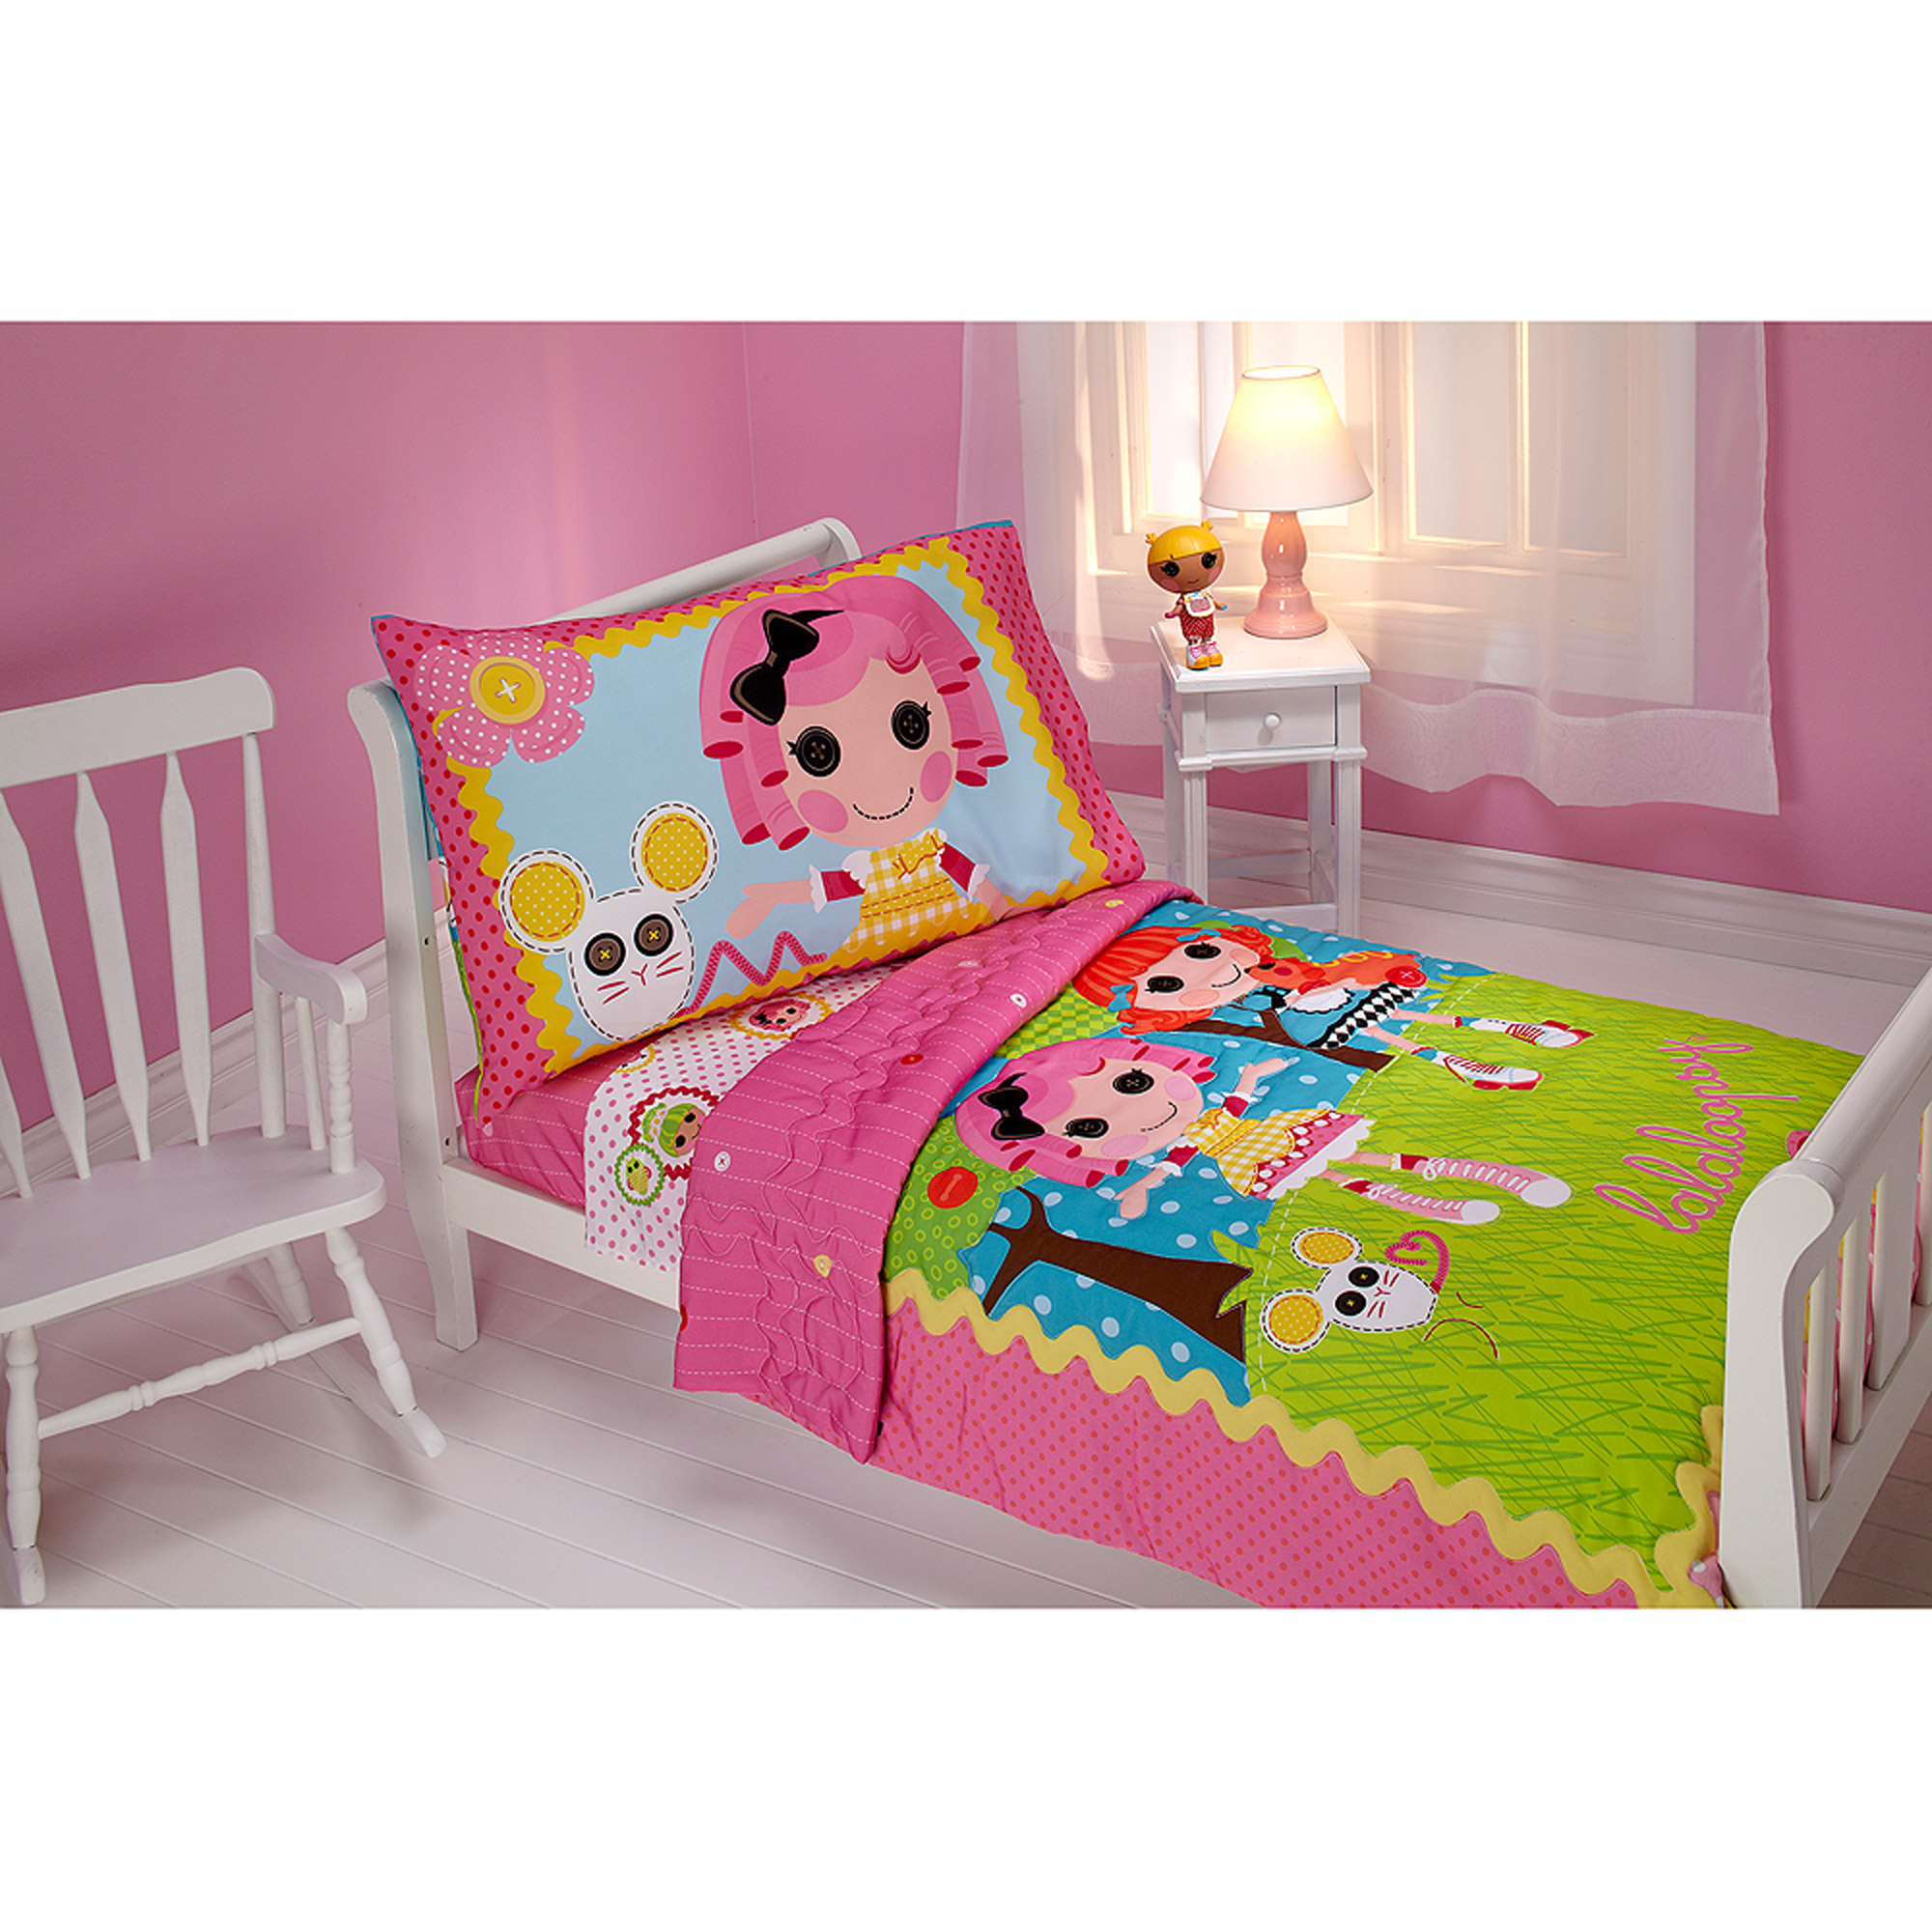 character corner toddler bed assortment wmattress bundle your choice of character walmartcom